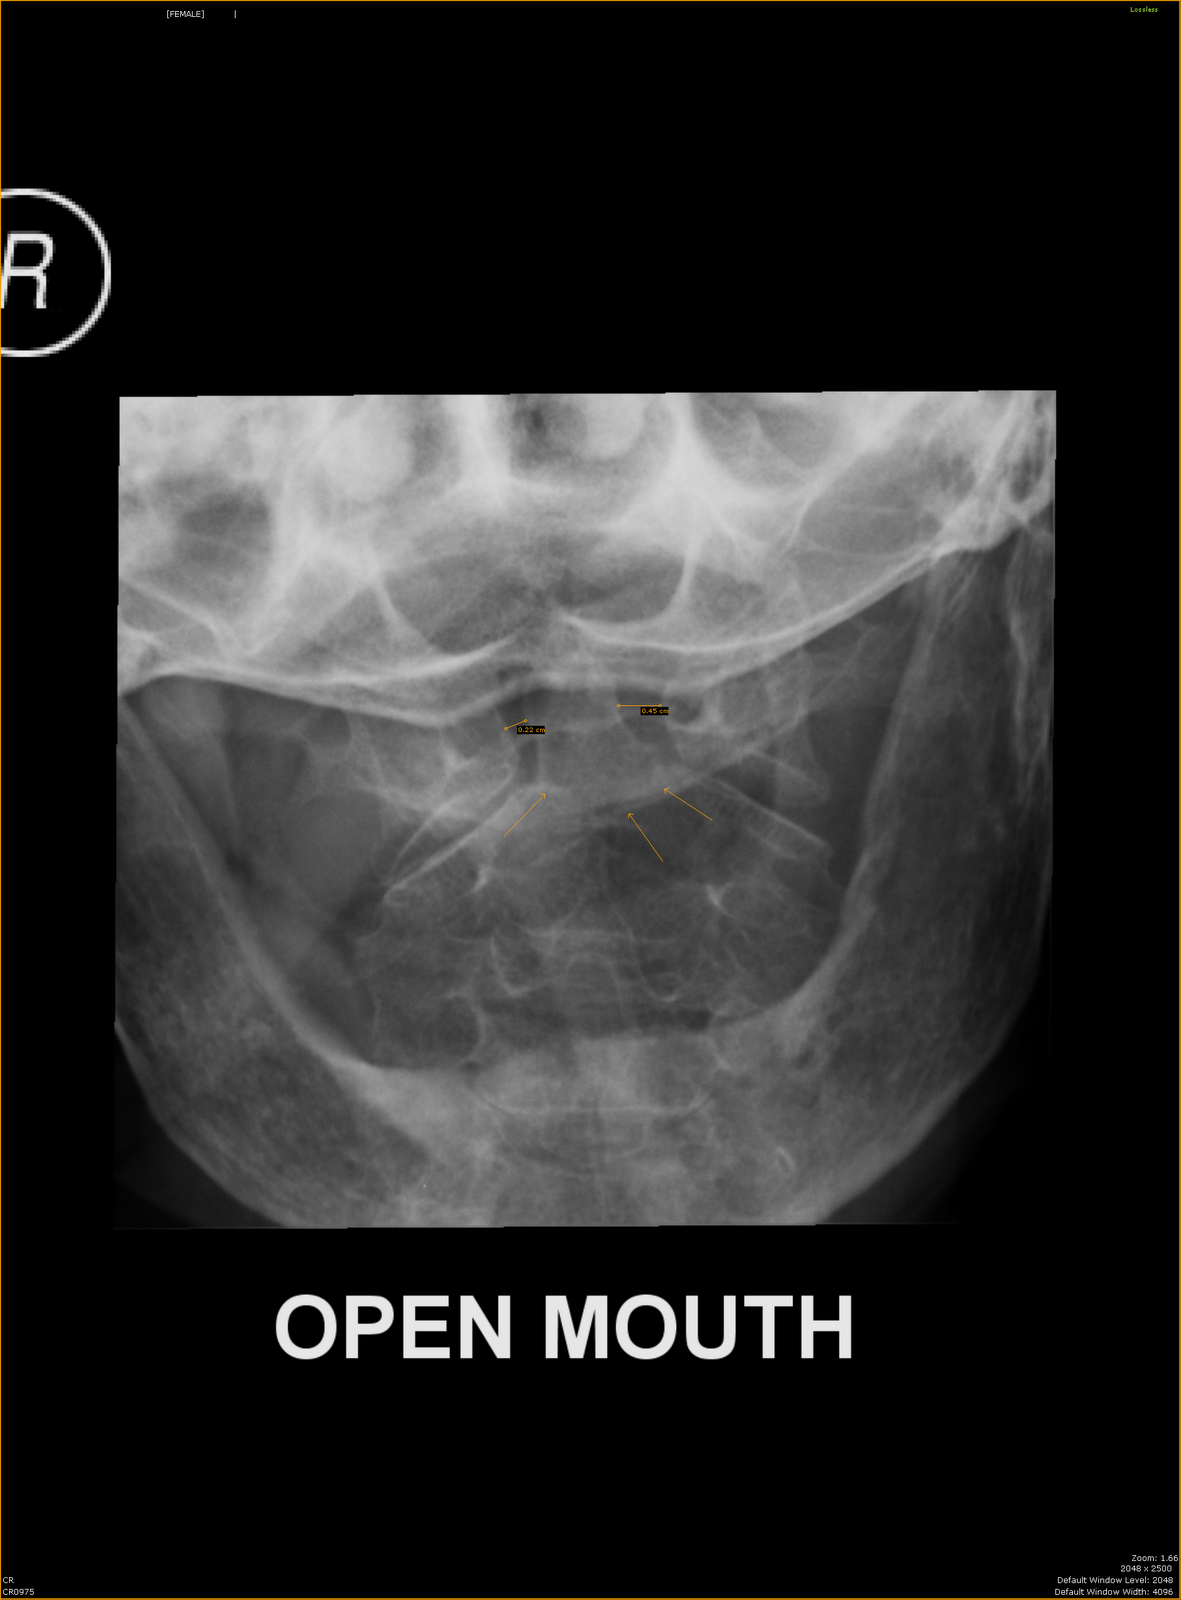 Odontoid fracture | Radiology Reference Article | Radiopaedia.org